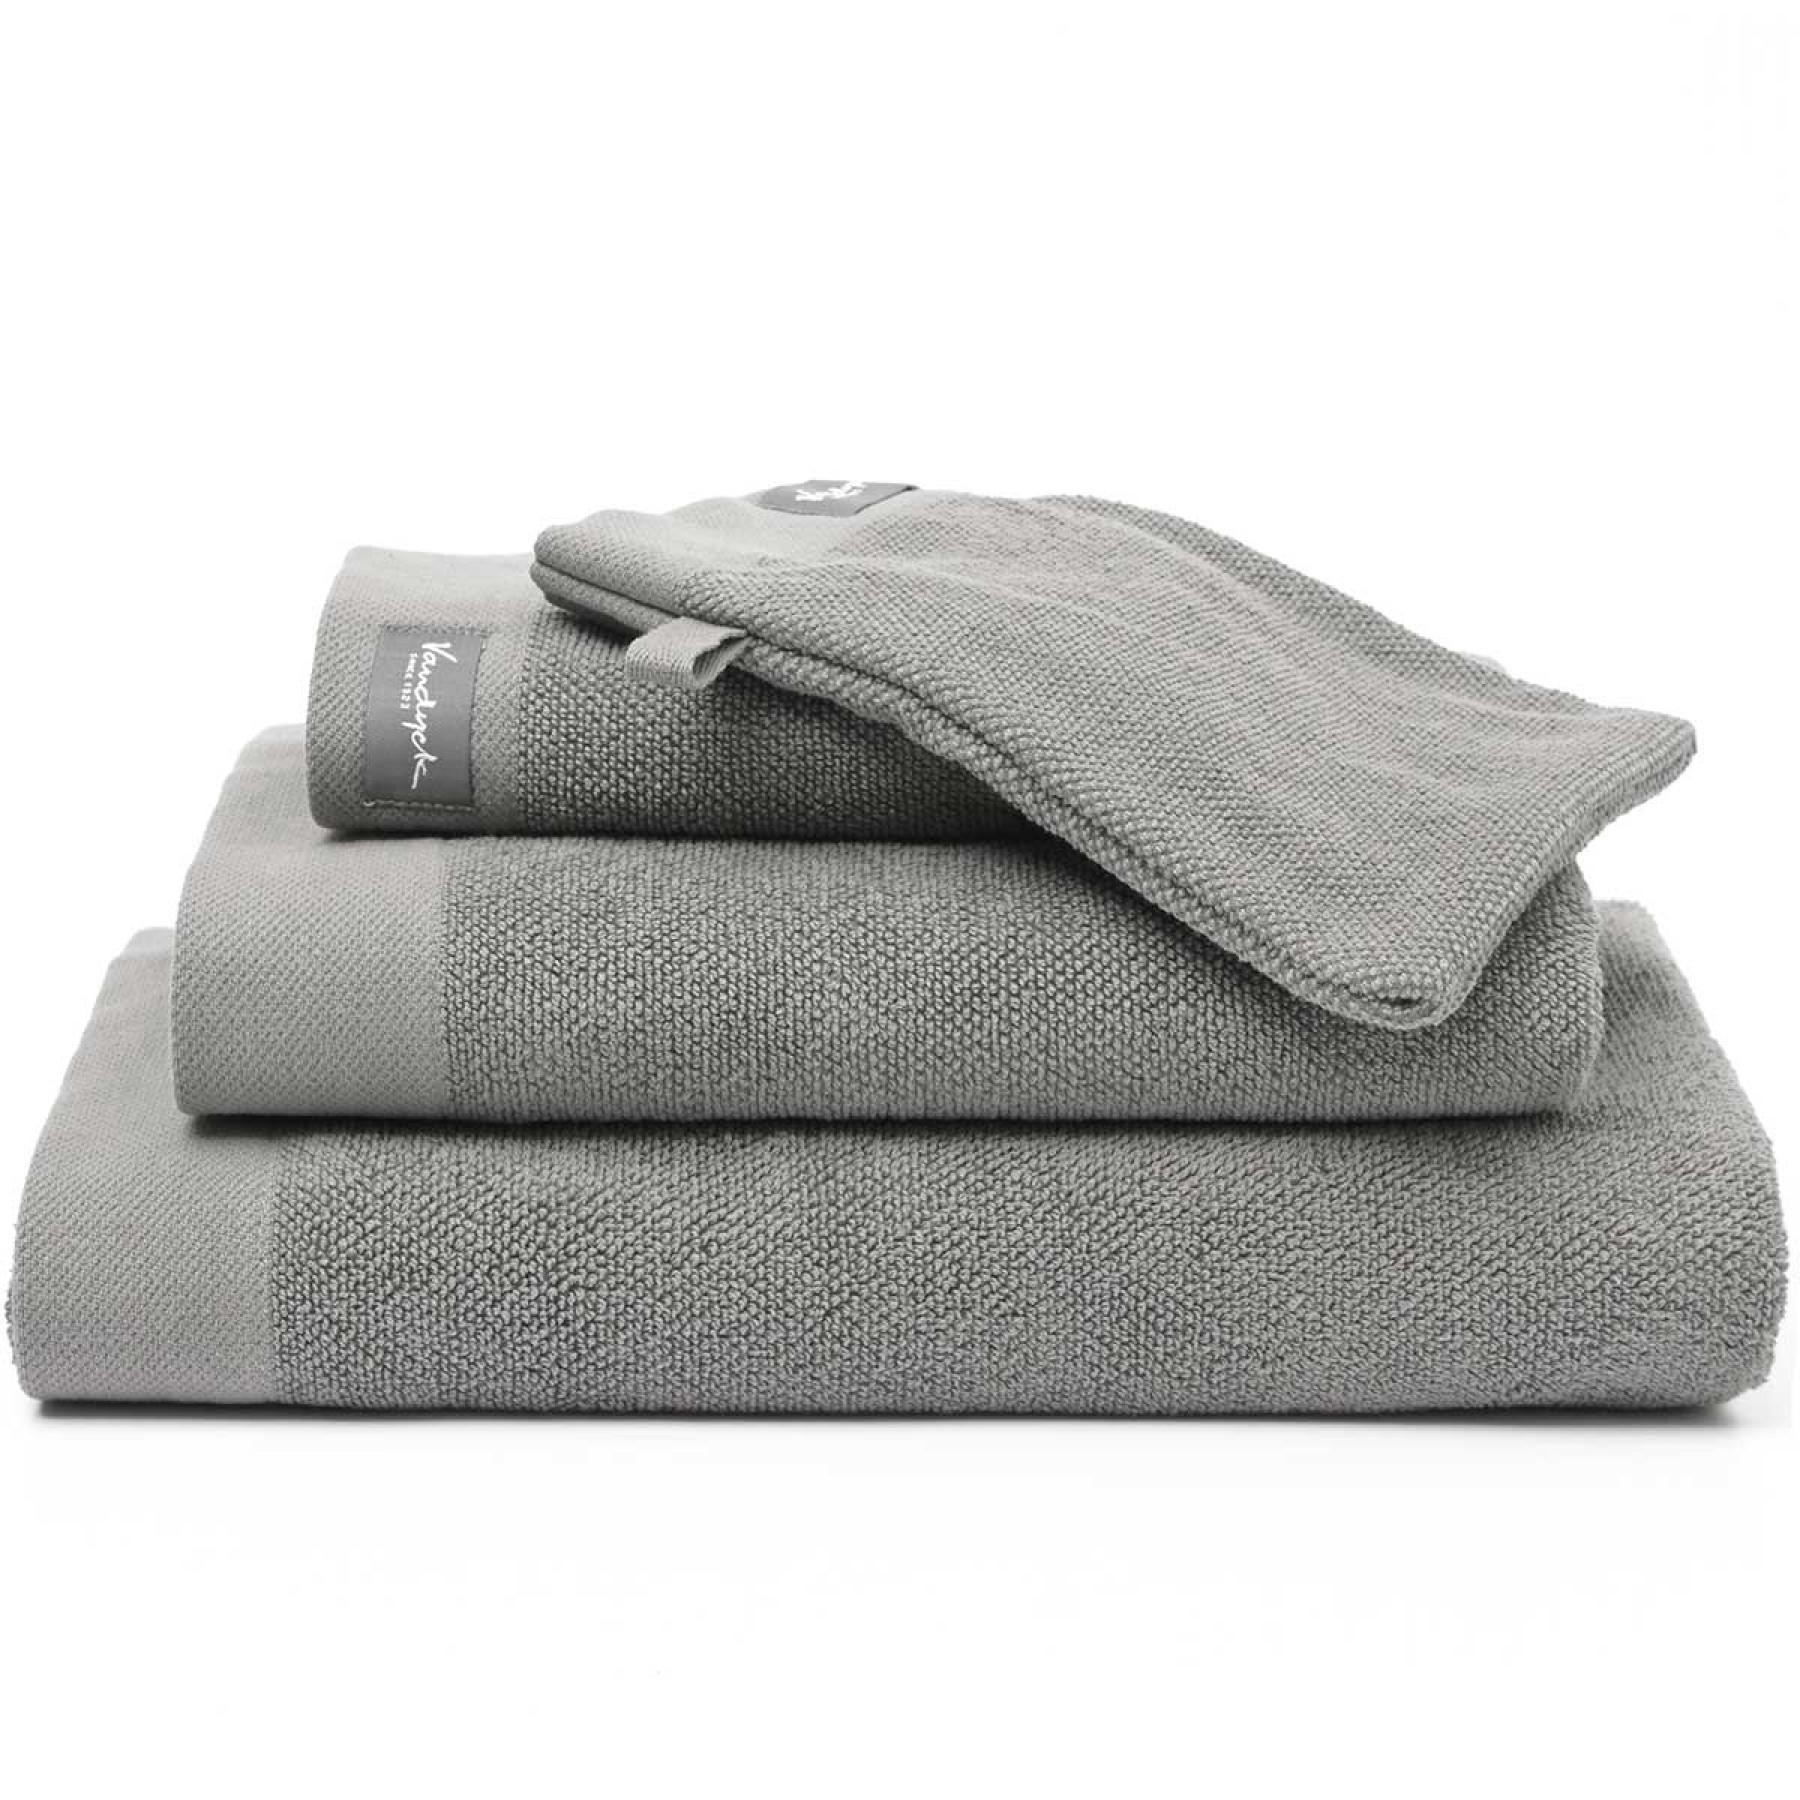 Vandyck Washand Uni Home Collection Mole Grey